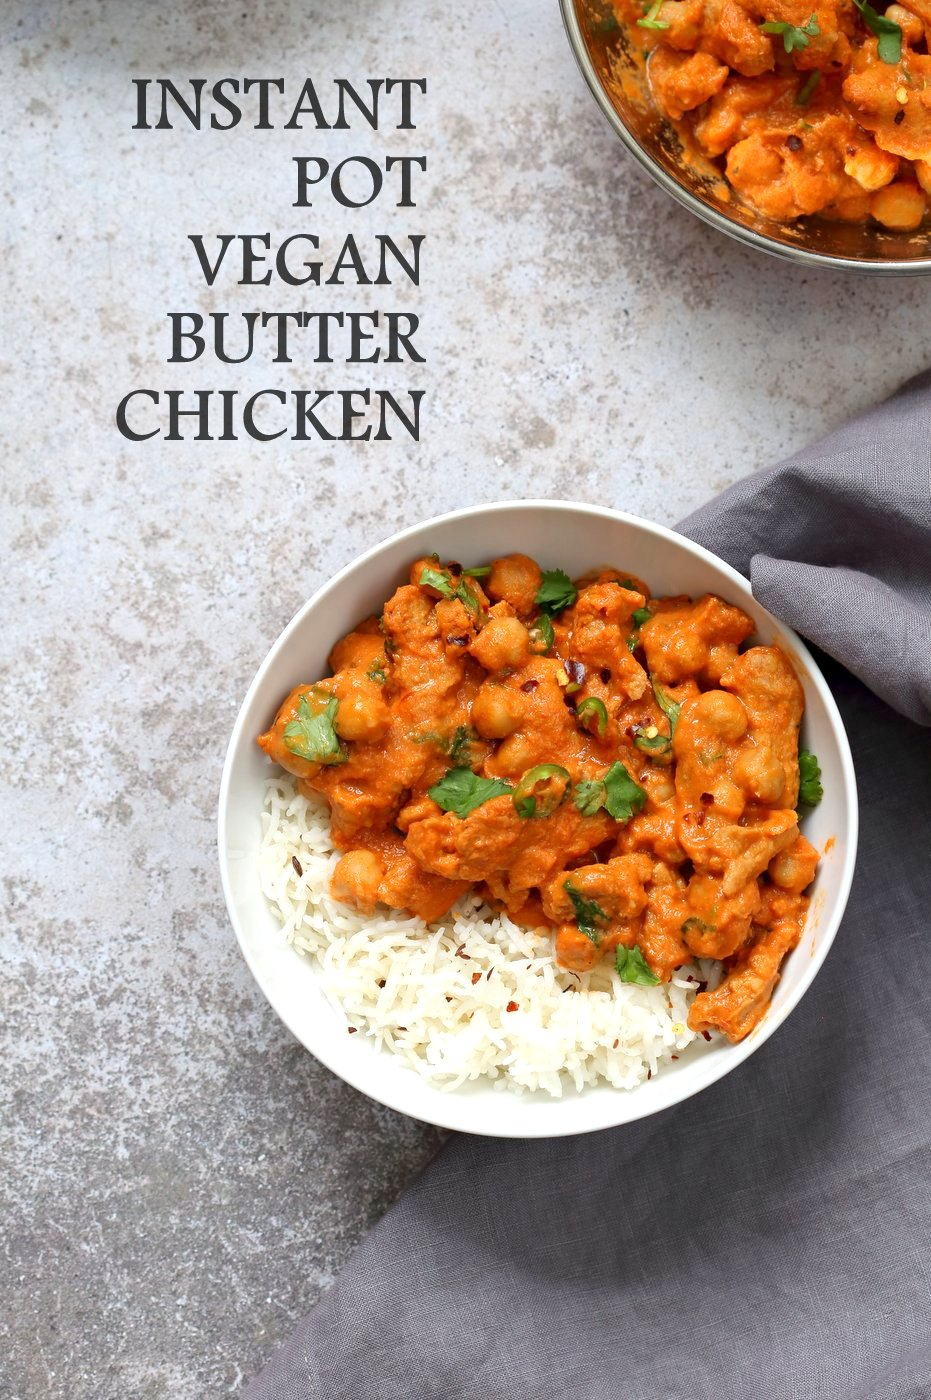 Instant Pot Vegan Butter Chicken With Soy Curls And Chickpeas Oil Free Recipe Vegetarian Instant Pot Vegan Instant Pot Recipes Butter Chicken